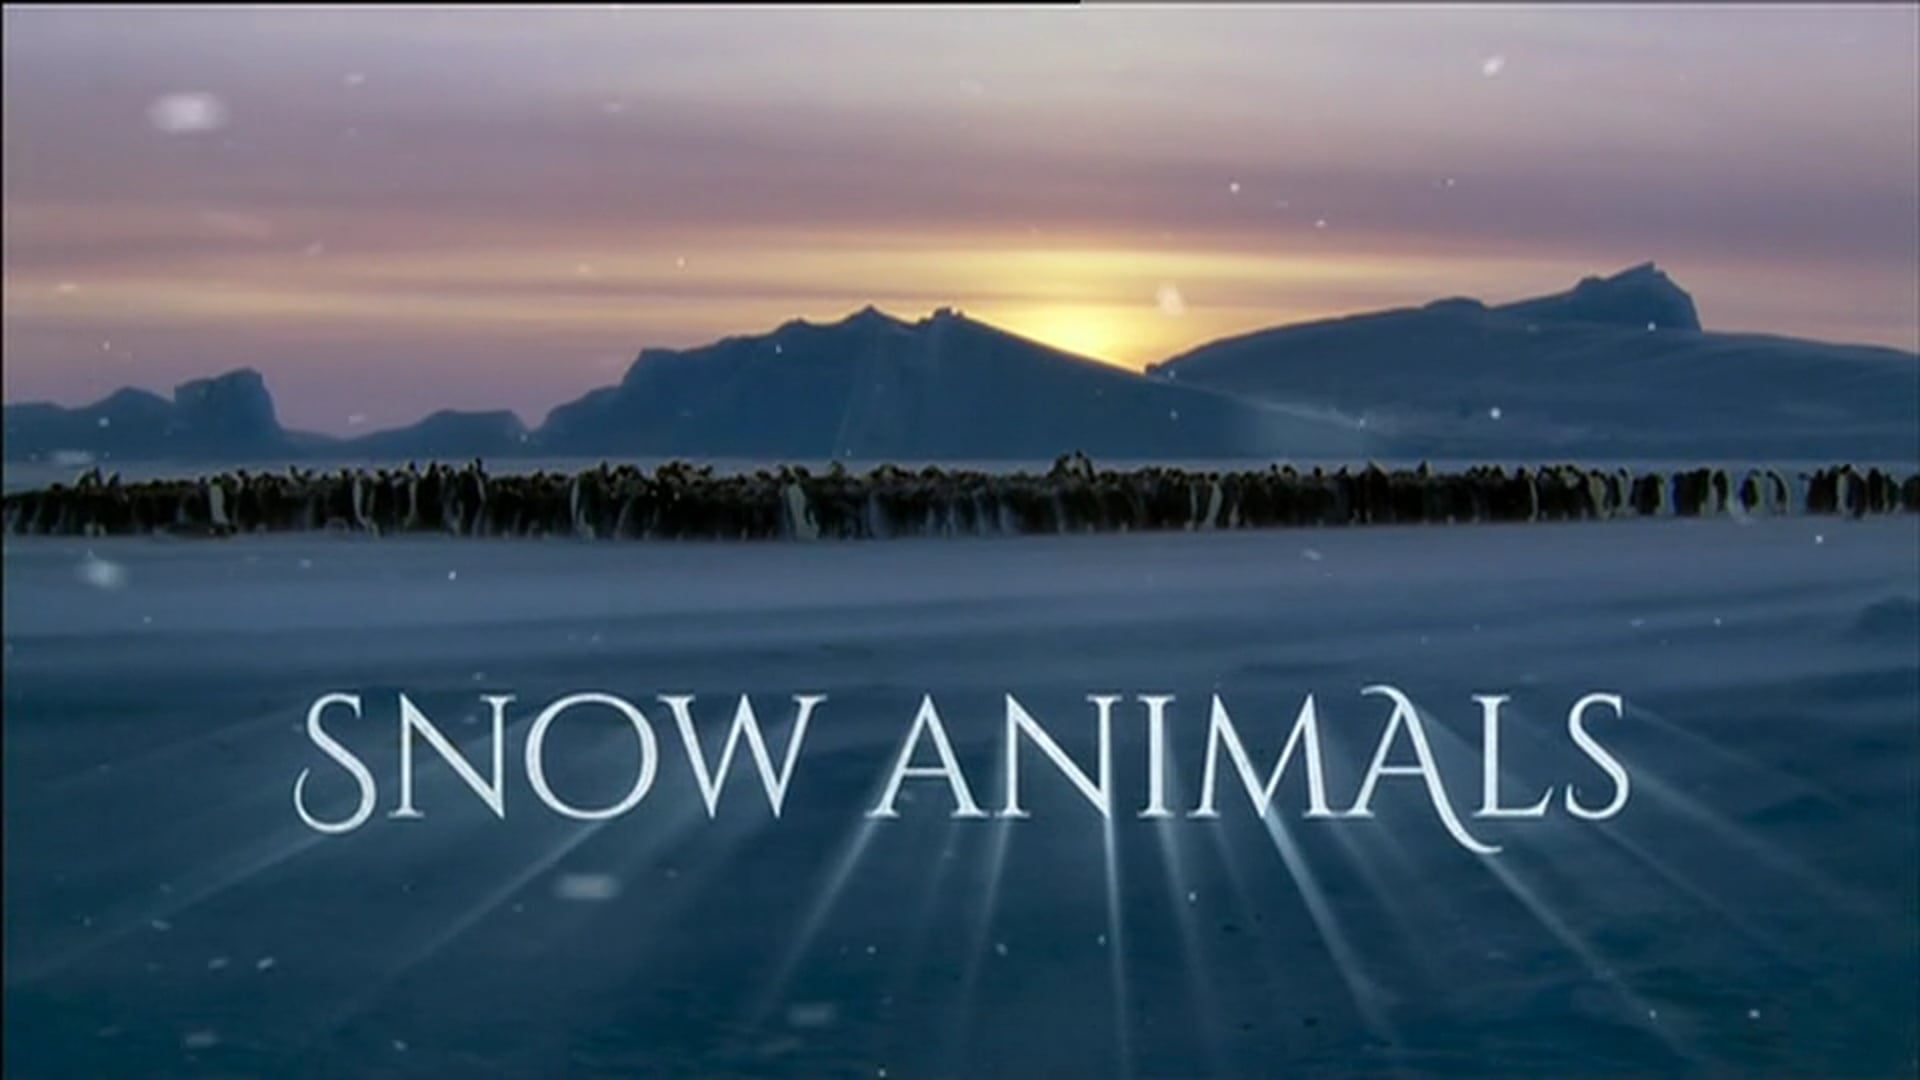 Snow Animals. Pre and Post Title